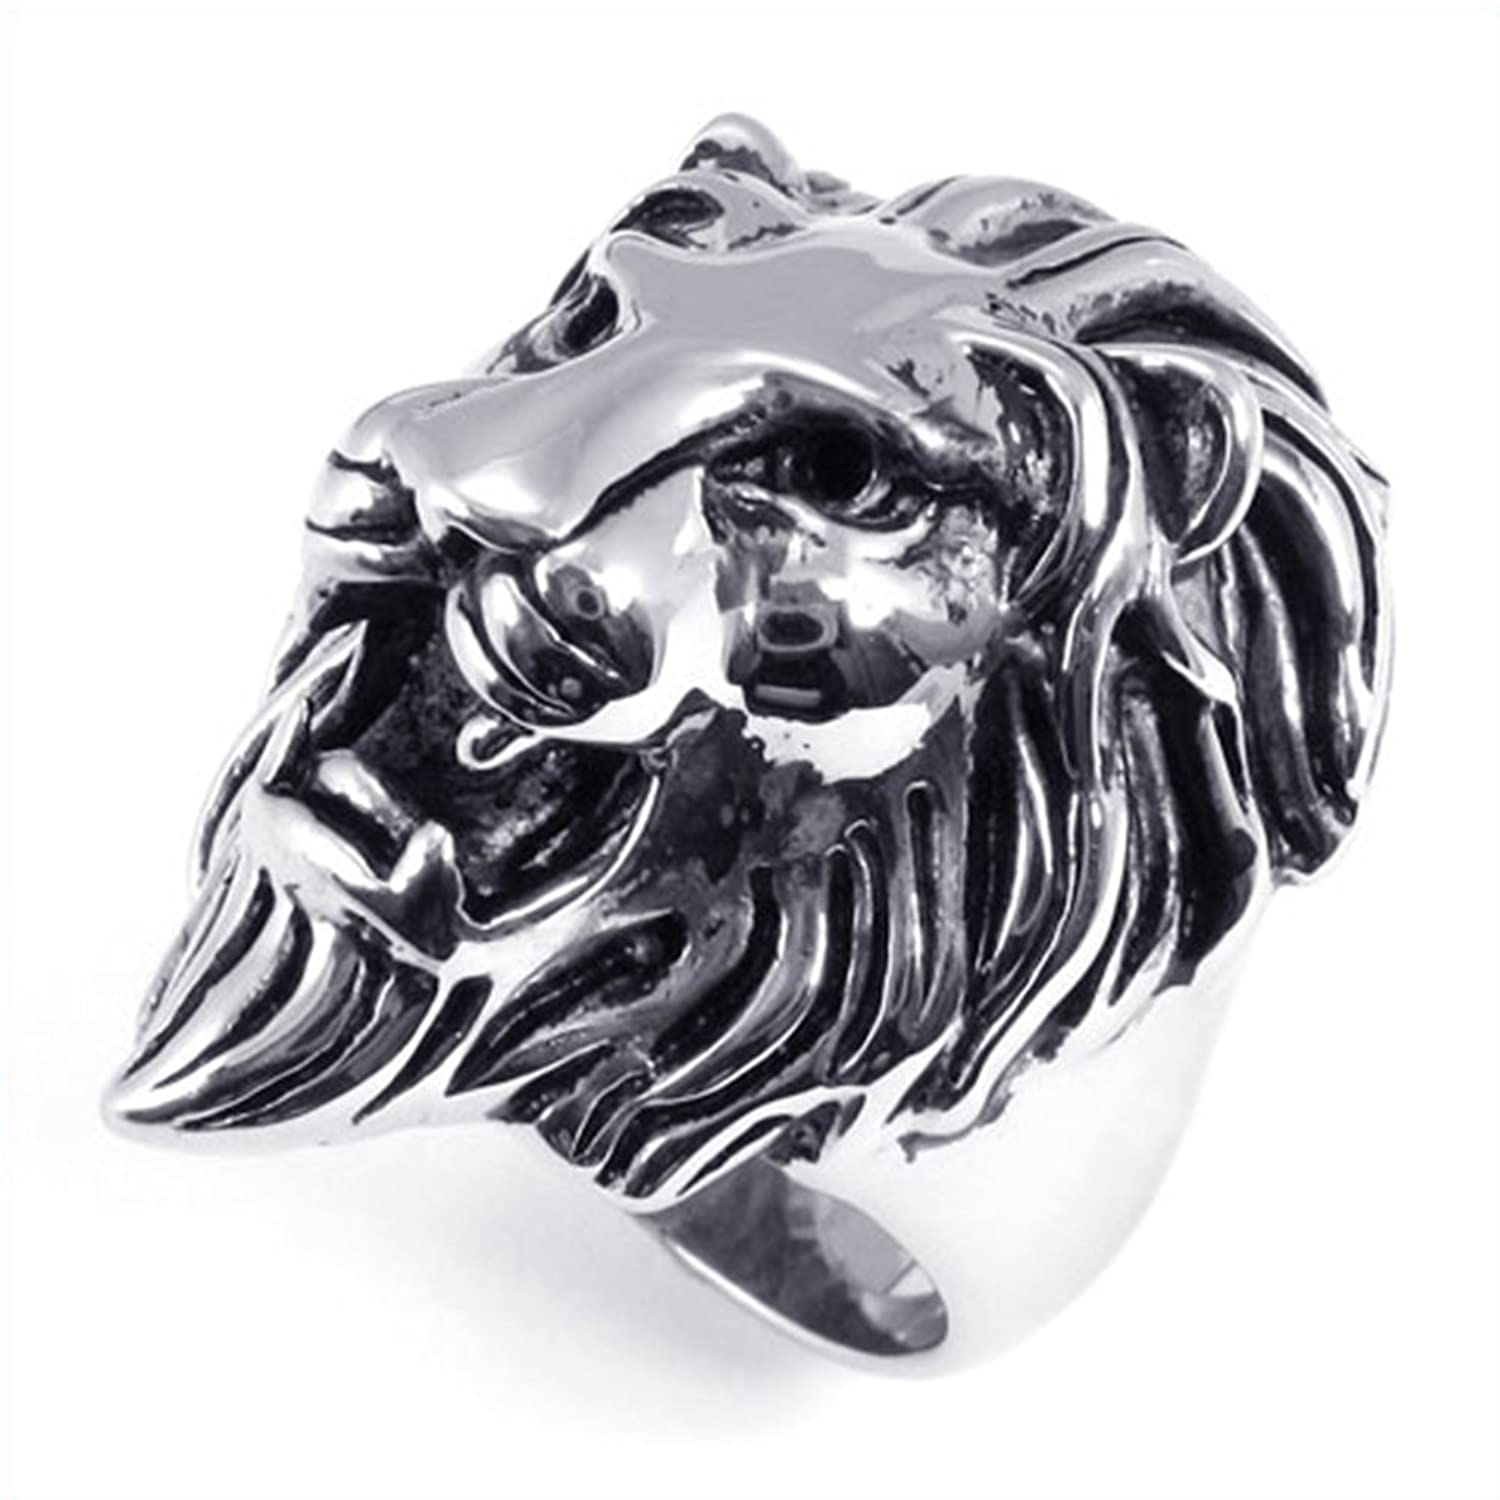 TEMEGO Jewelry Mens Stainless Steel Ring, Vintage Gothic Lion Head Band, Black Silver